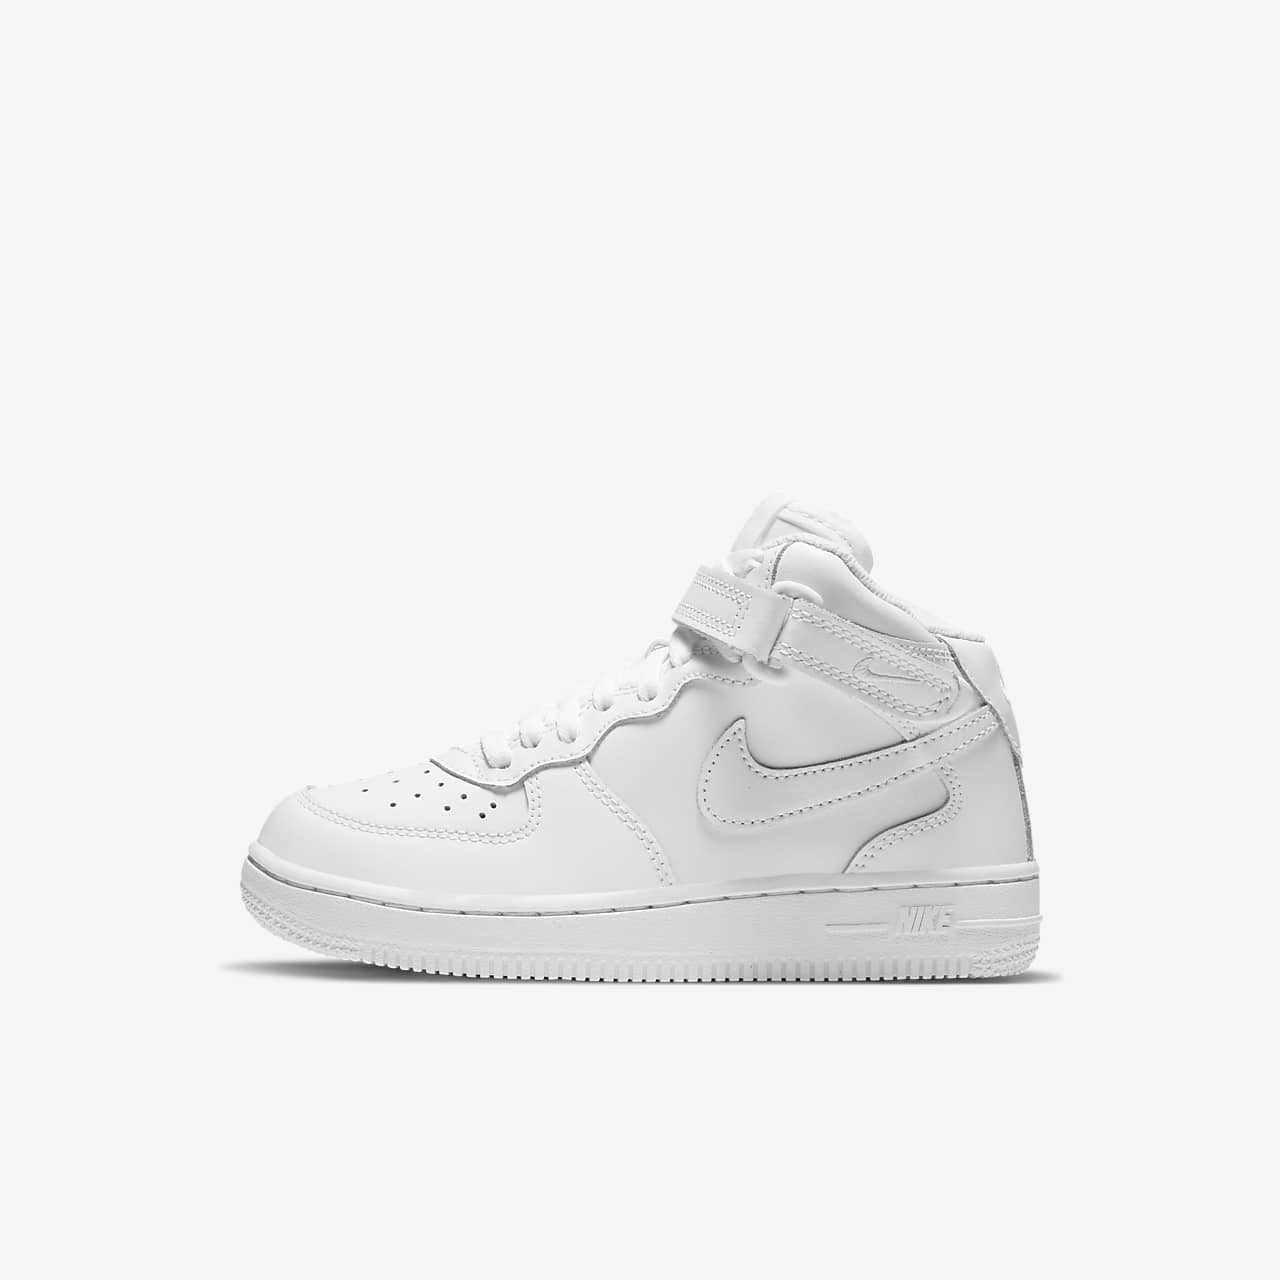 hot sale online 408cc 8bca2 Nike Air Force 1 Mid